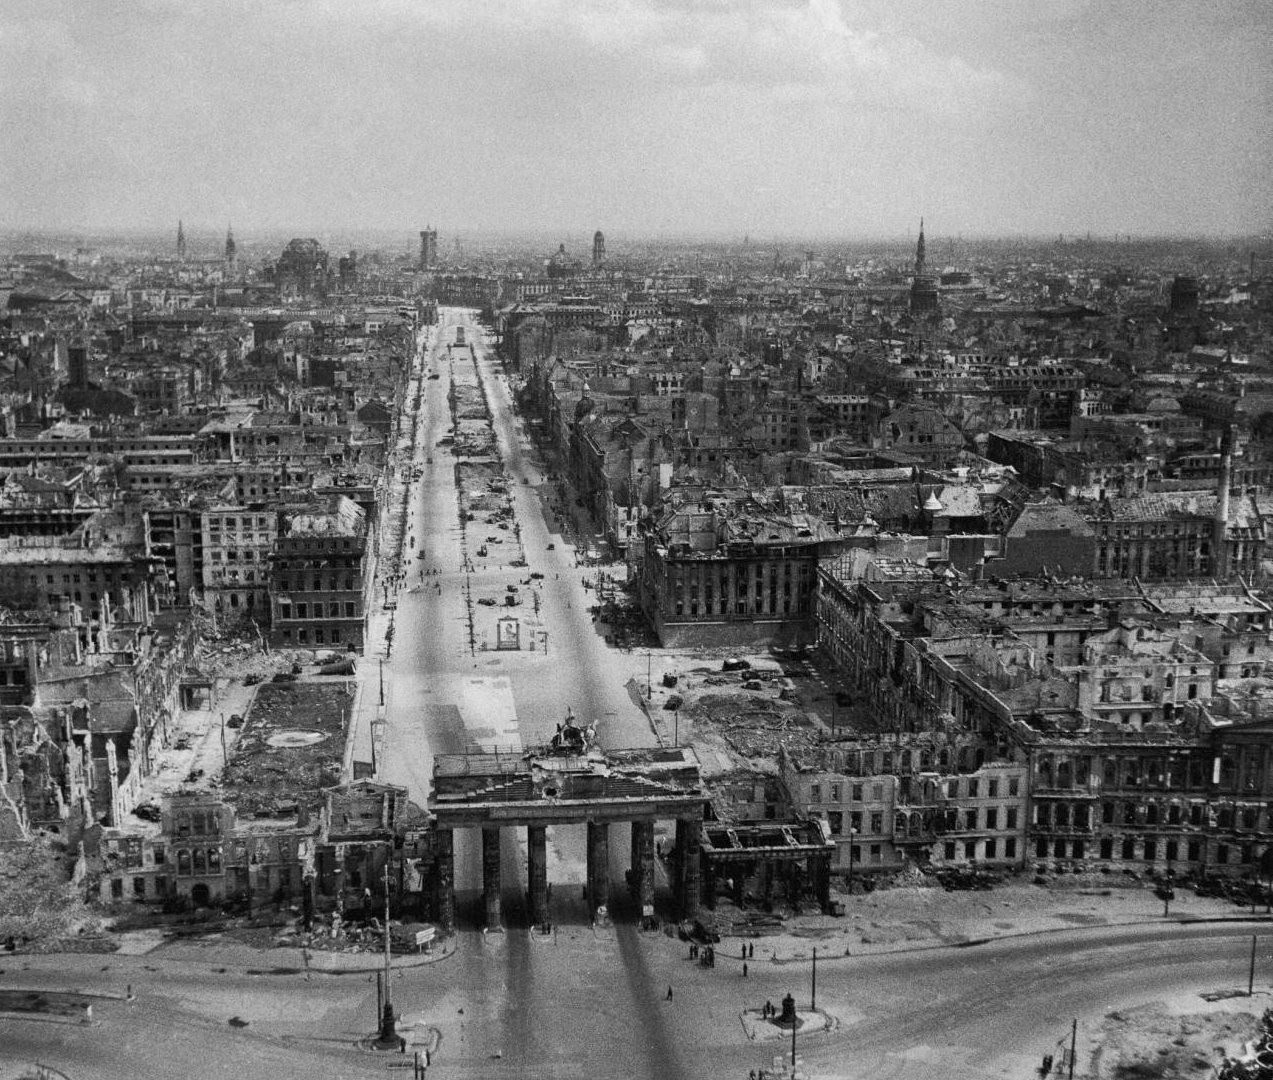 The area extending north beyond the Brandenburg Gate was later controlled by Soviets for almost 40 year. Note the portrait of Stalin in the center.